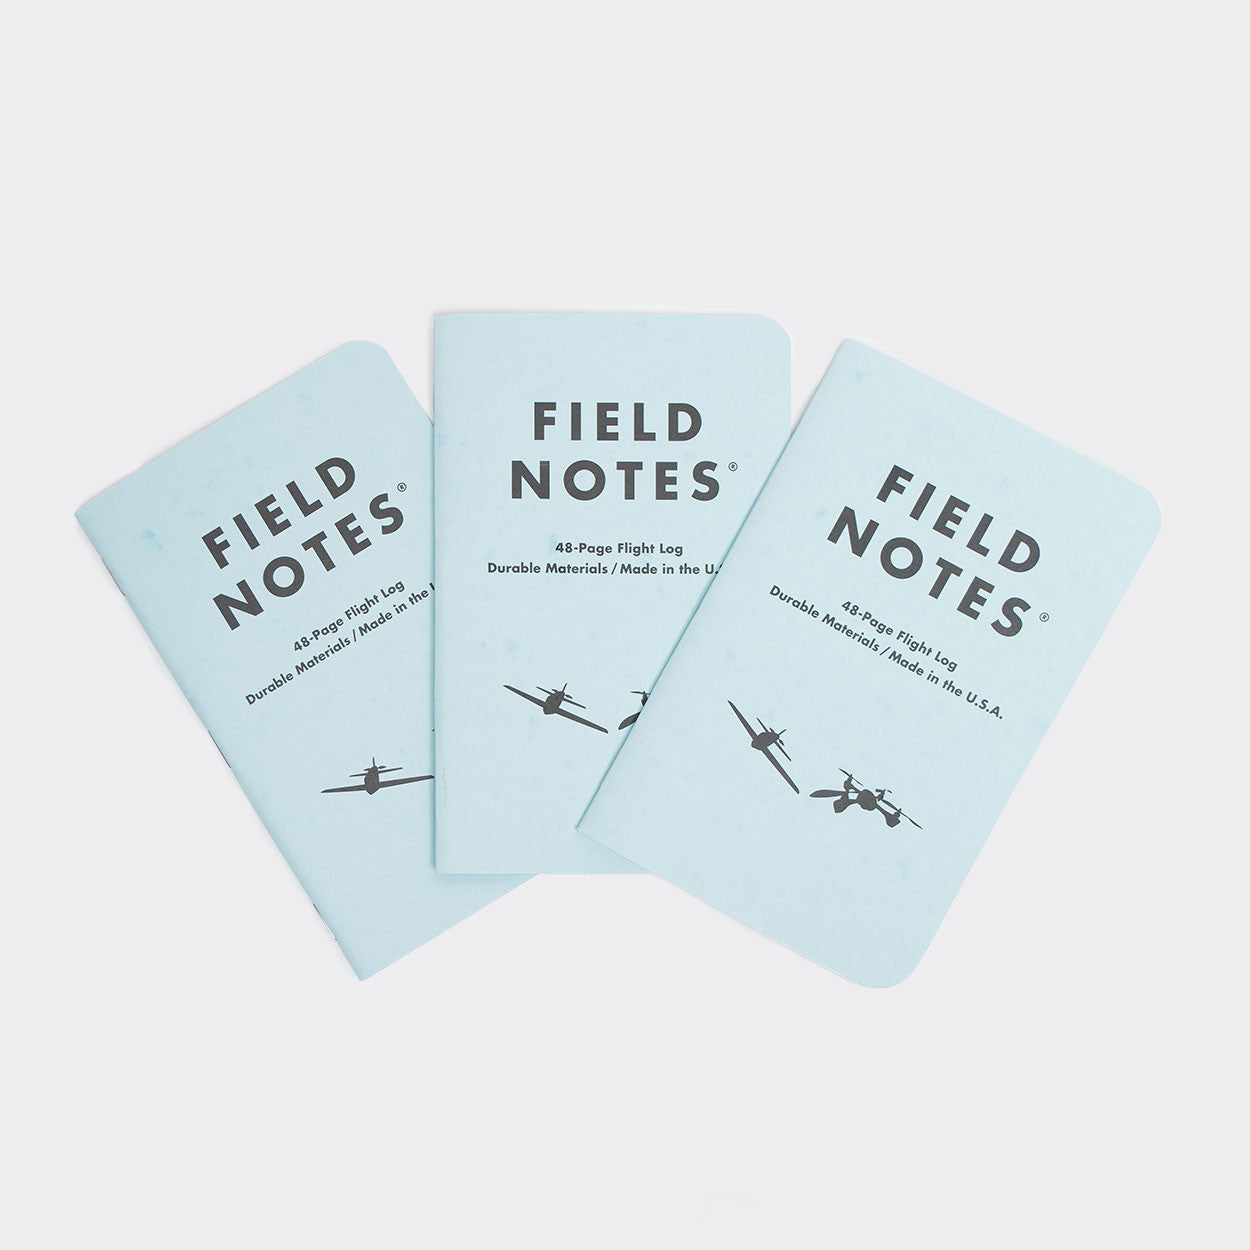 Field Notes 3-pack Notebooks - Tested Flight Log Edition Other Stuff - CARTOCON